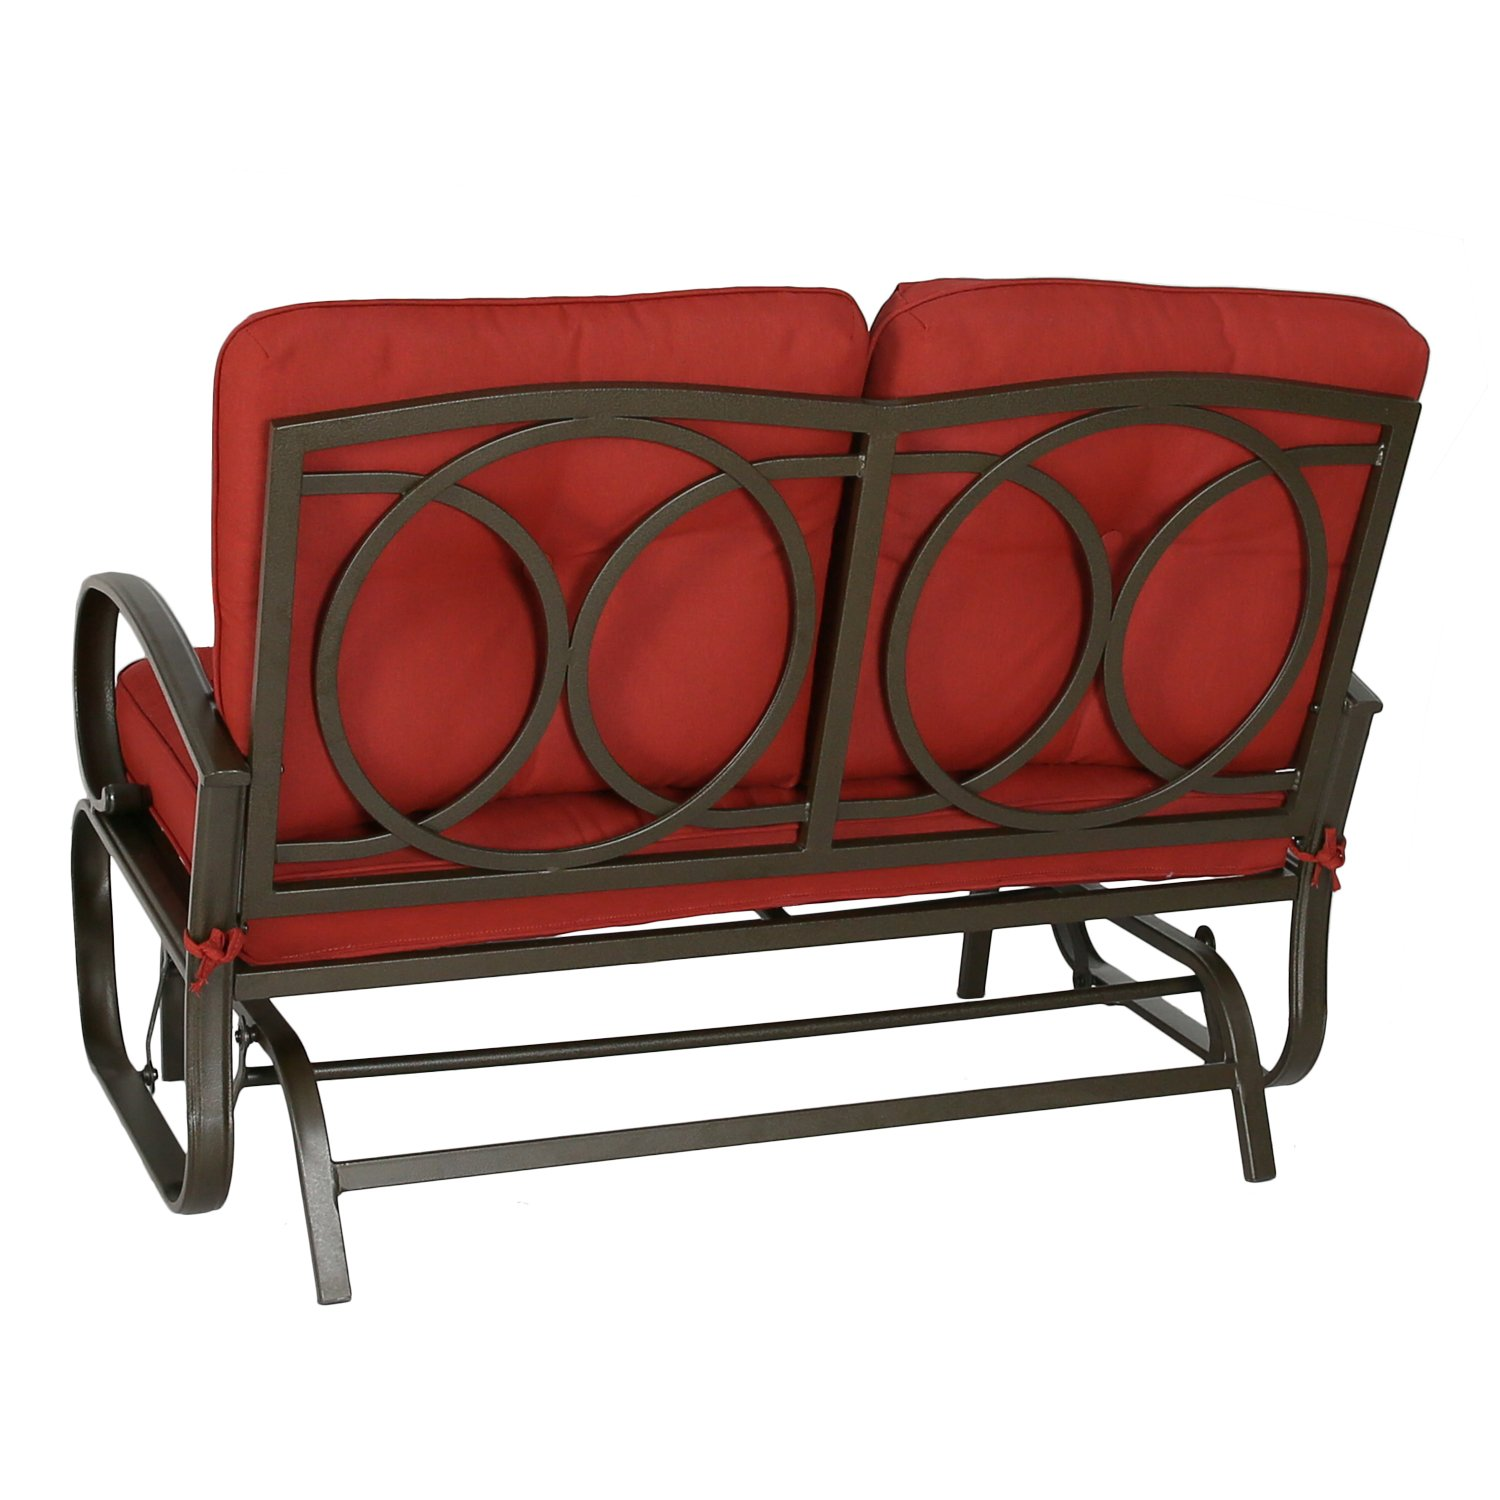 Magnificent Patio Glider Bench Loveseat Outdoor Cushioed 2 Person Rocking Seating Patio Swing Chair Brick Red Customarchery Wood Chair Design Ideas Customarcherynet